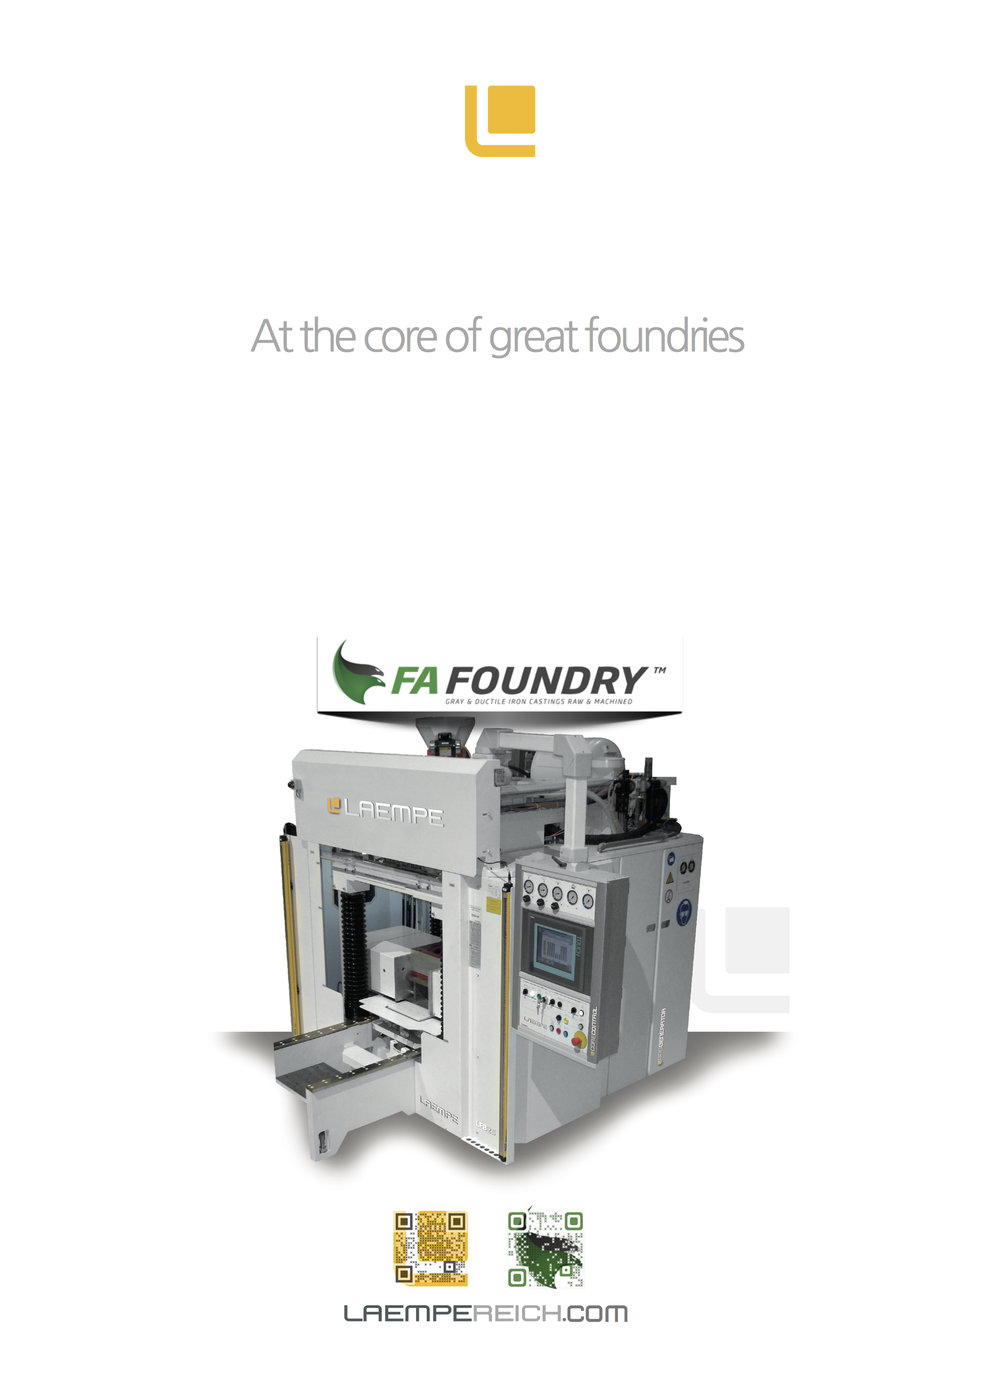 FA Foundry 2014 - At the Core of Great Foundries - Label 3D offset with QR code with new logo.jpg